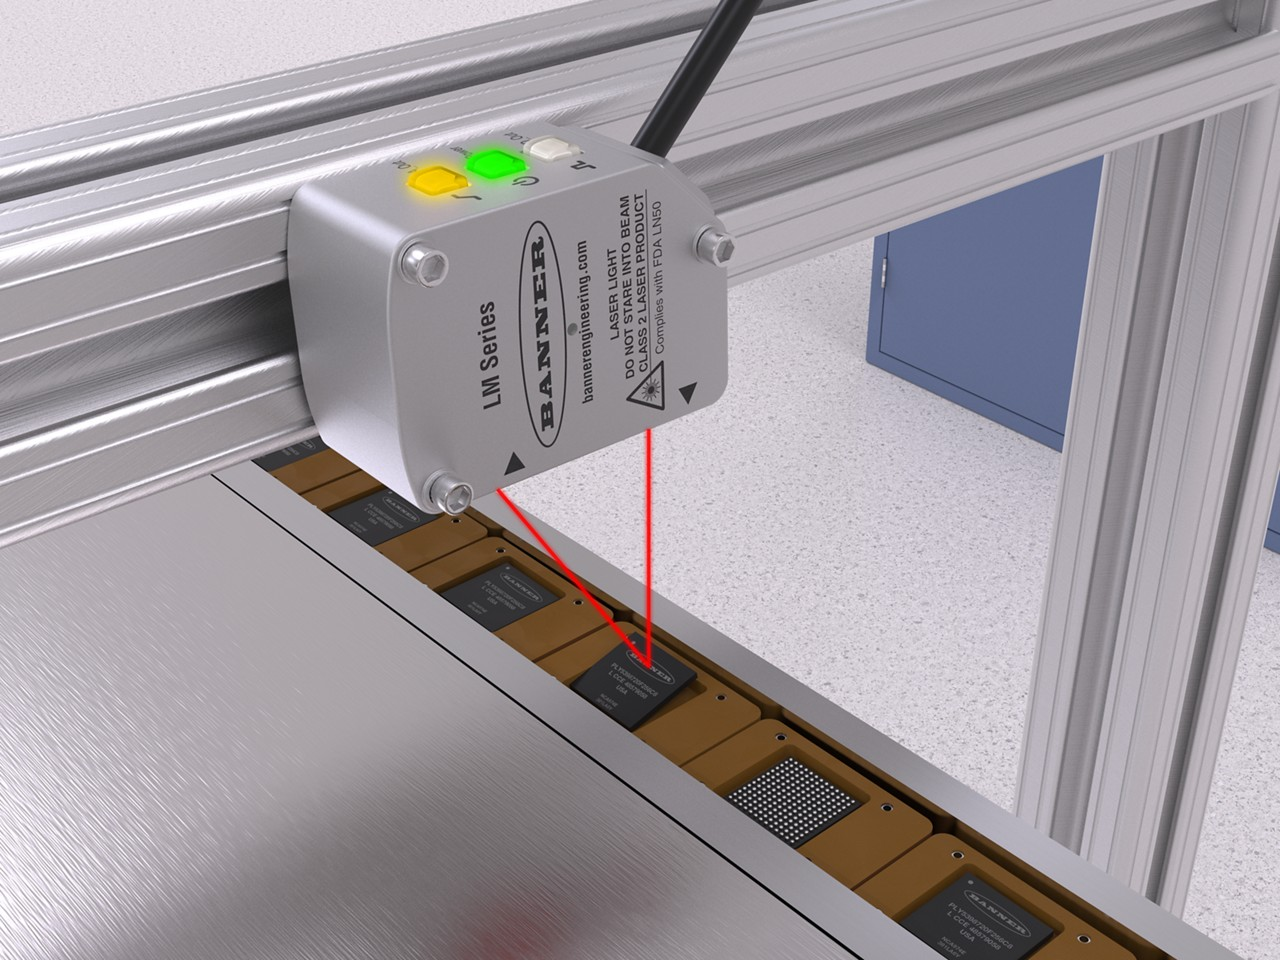 LM precision measurement sensor inspects IC chips seated in nests